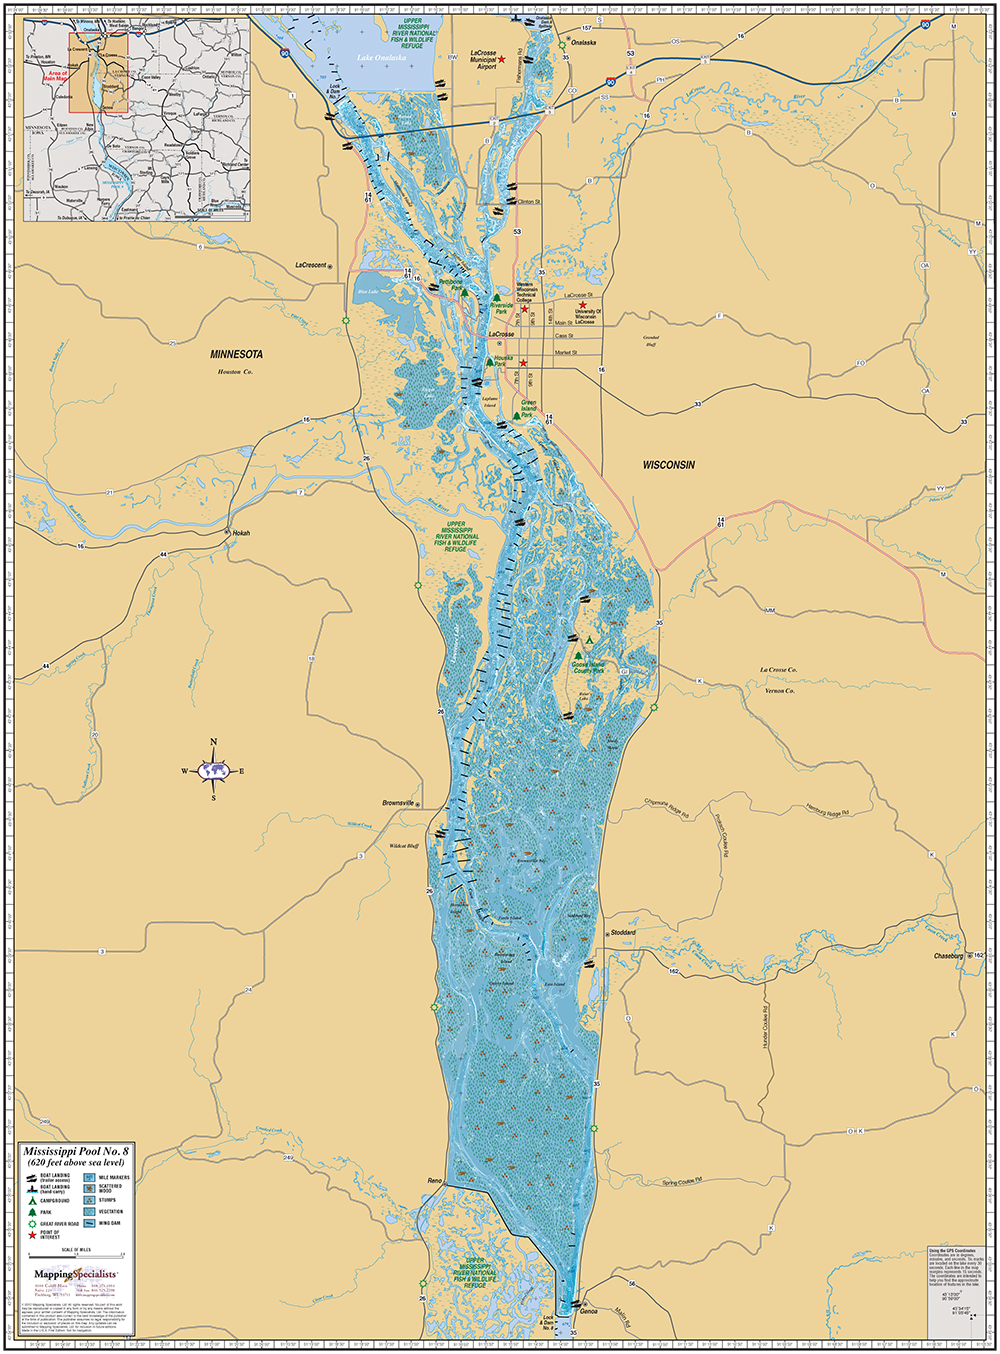 Mississippi River Wisconsin Map Mississippi River (Pool 8) Wall Map